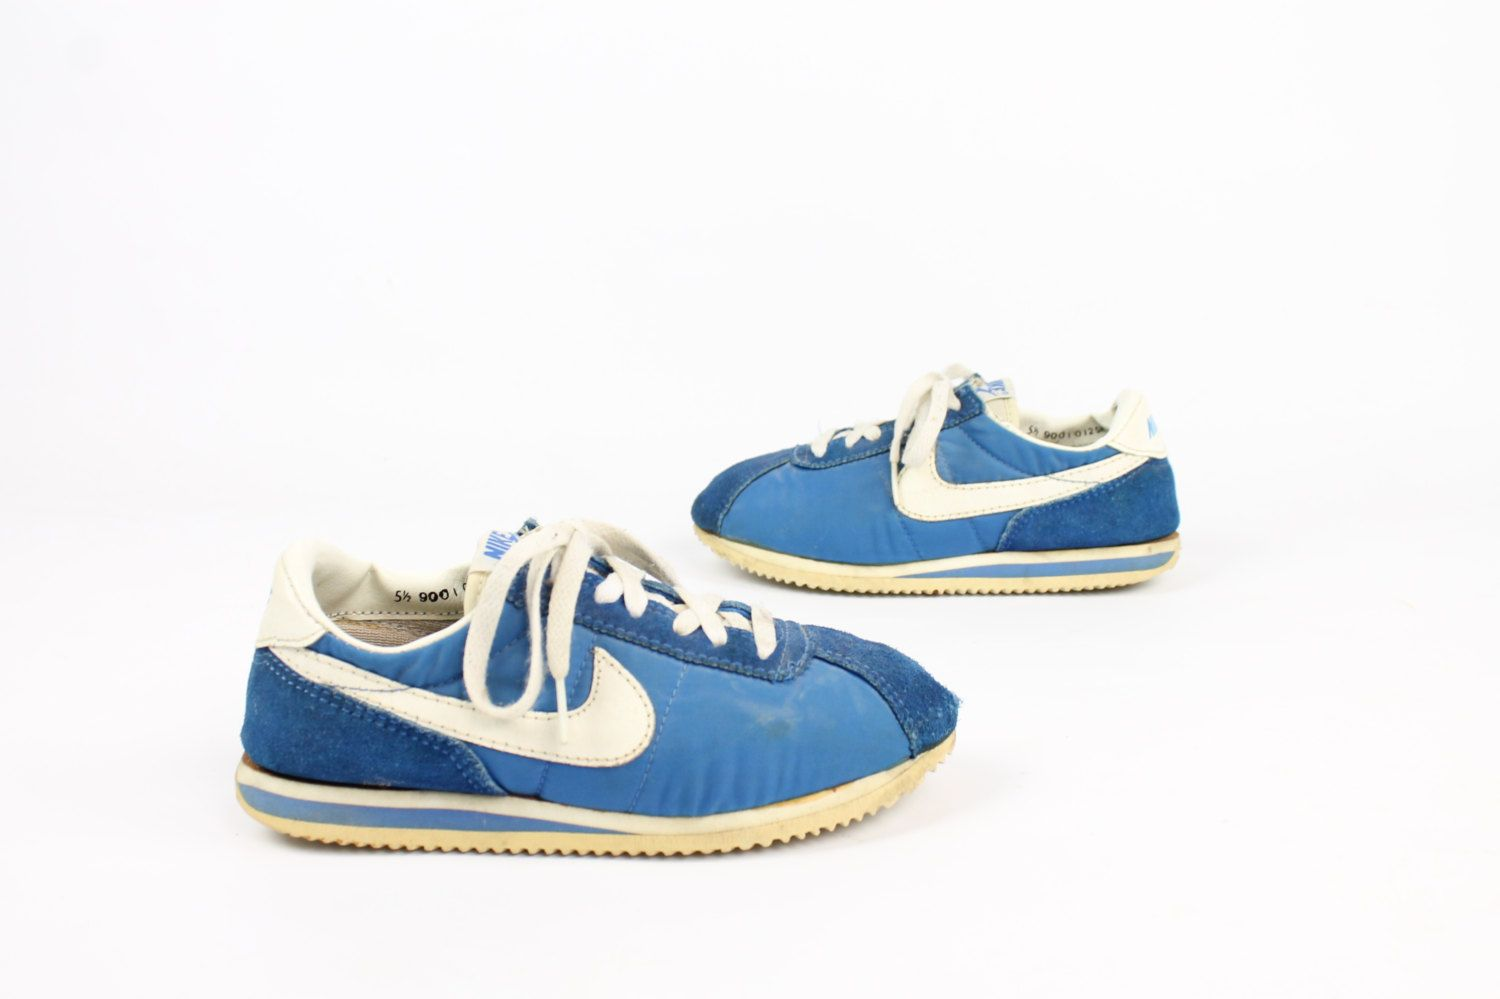 huge discount 84c2e 129db 52, Vintage 90s Nike Cortez Running Shoes Sneakers Blue Suede Nylon 1990s  5.5 6.5 by ScarletFury on Etsy